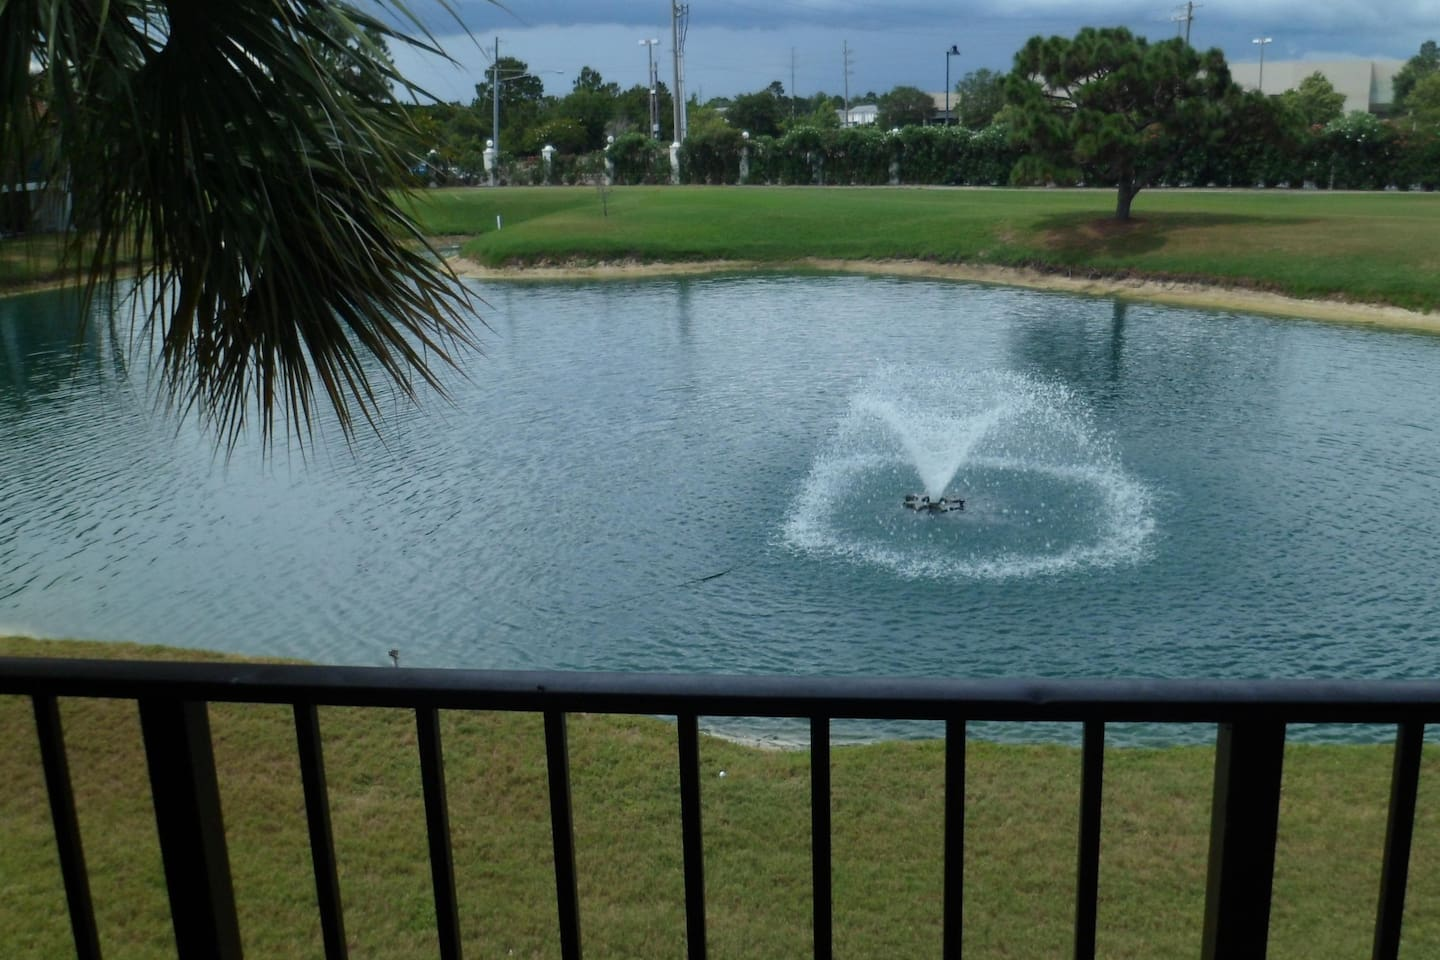 Overlooking a Pond located on the 6th Fairway of the 9-Hole Golf Course